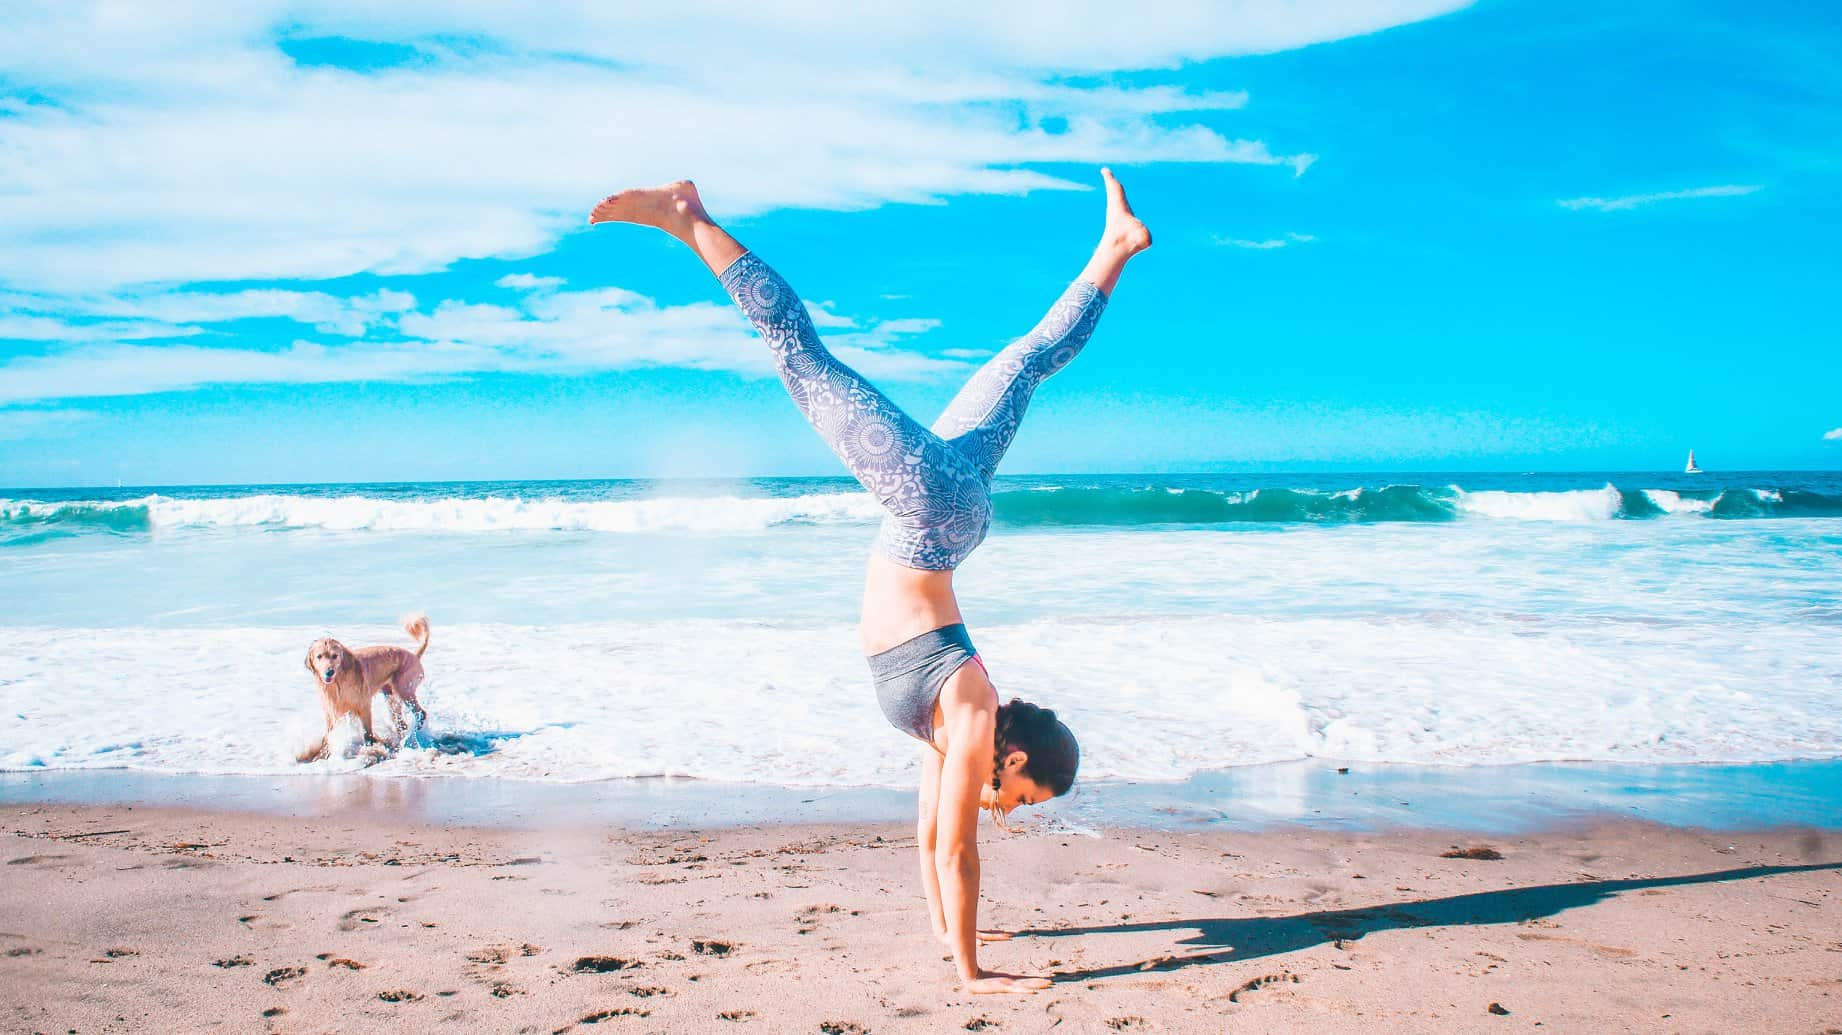 10 WAYS TO STAY FIT WHILE ON VACATION